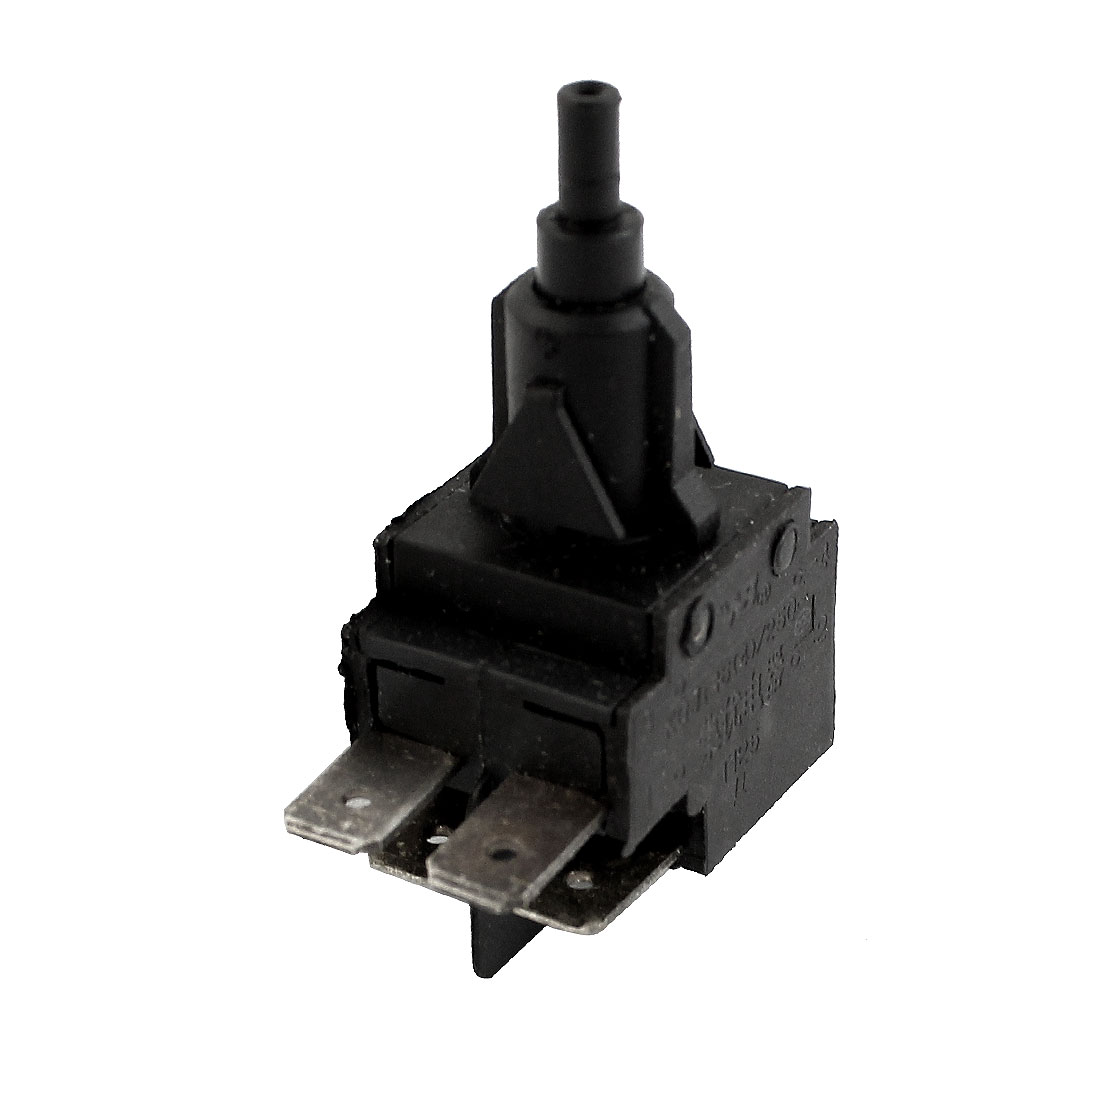 Replacement AC 250V 4A 4 Pin NO NC Momentary Power Switch for Washer Washing Machine